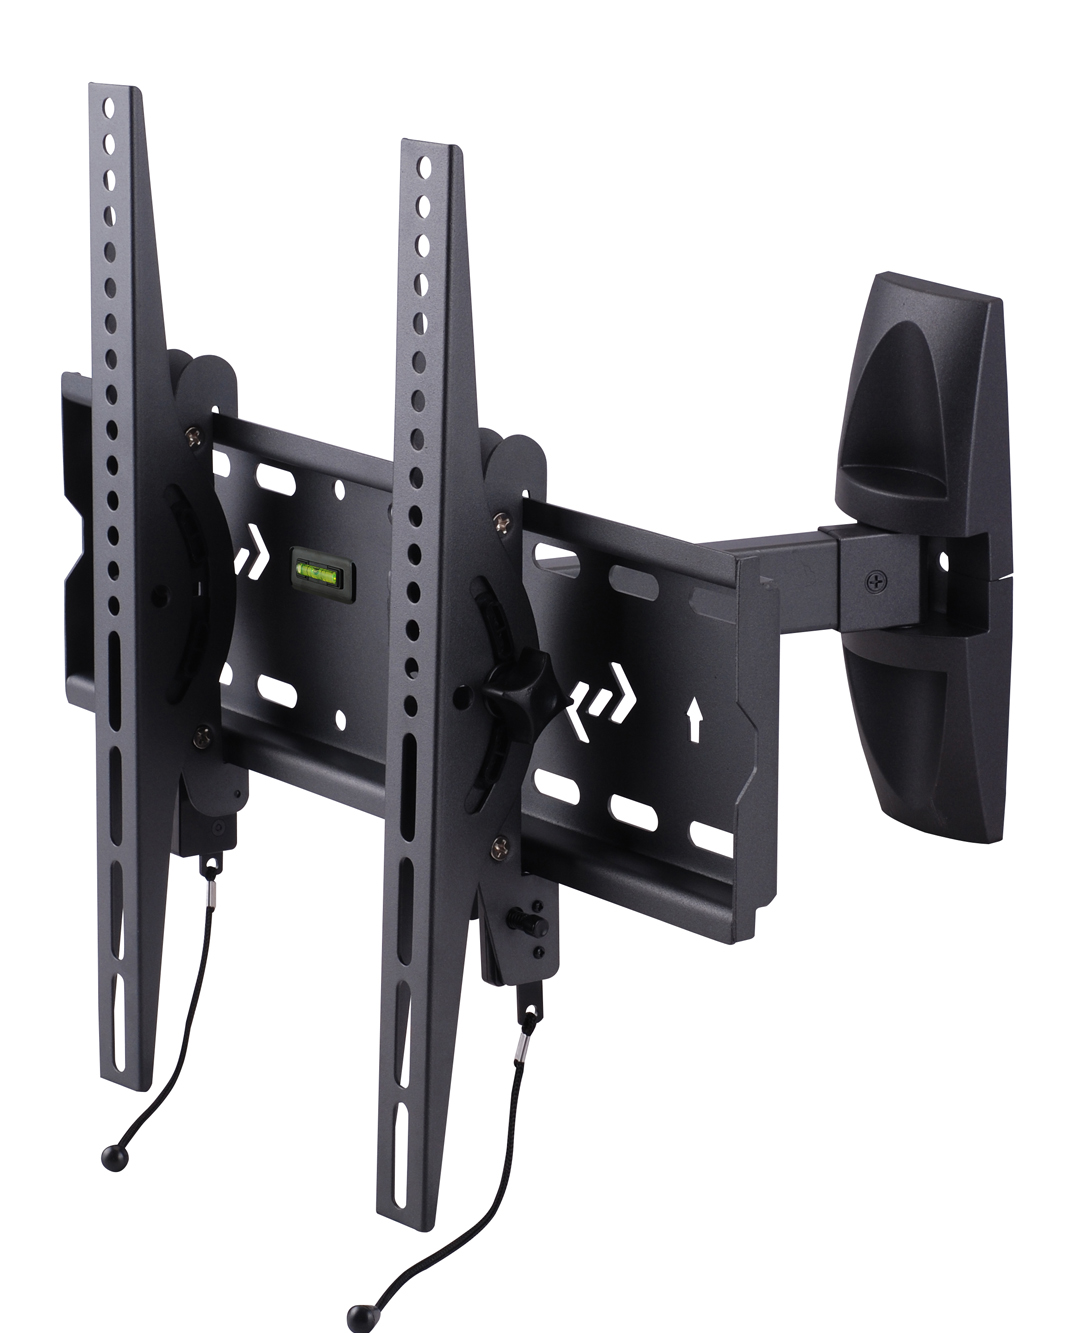 tv mounts store on shoppinder. Black Bedroom Furniture Sets. Home Design Ideas